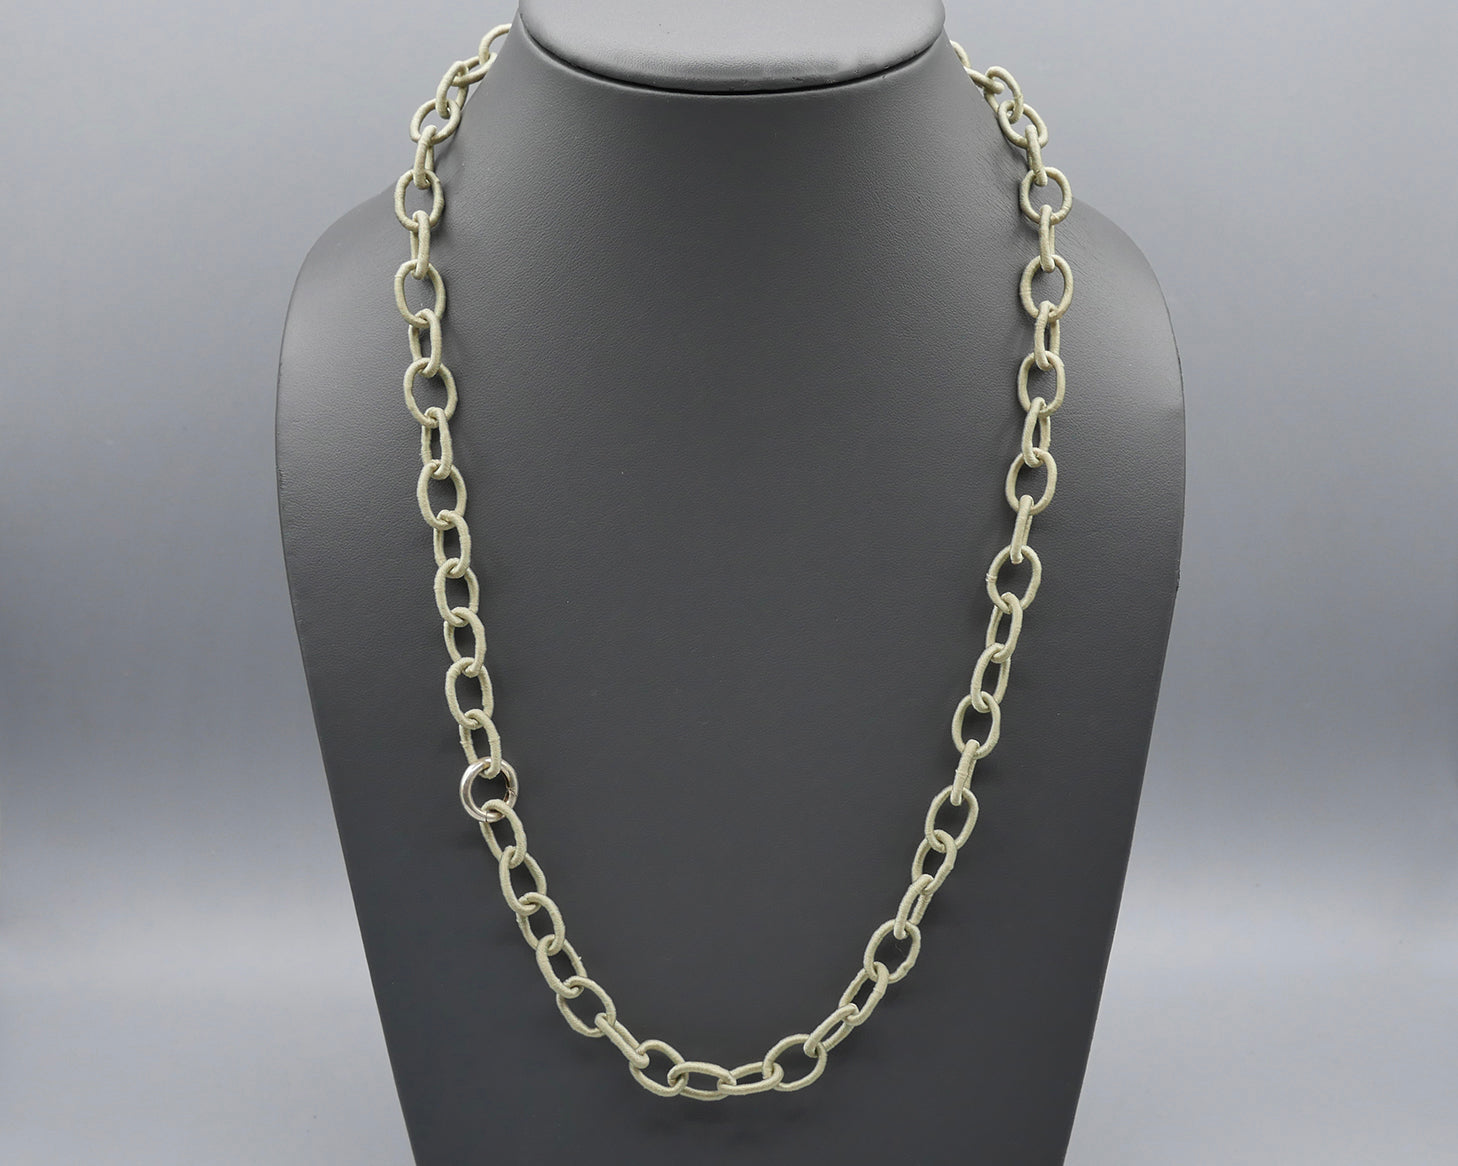 Silk Link Necklace - Non-Metallic Light Khaki